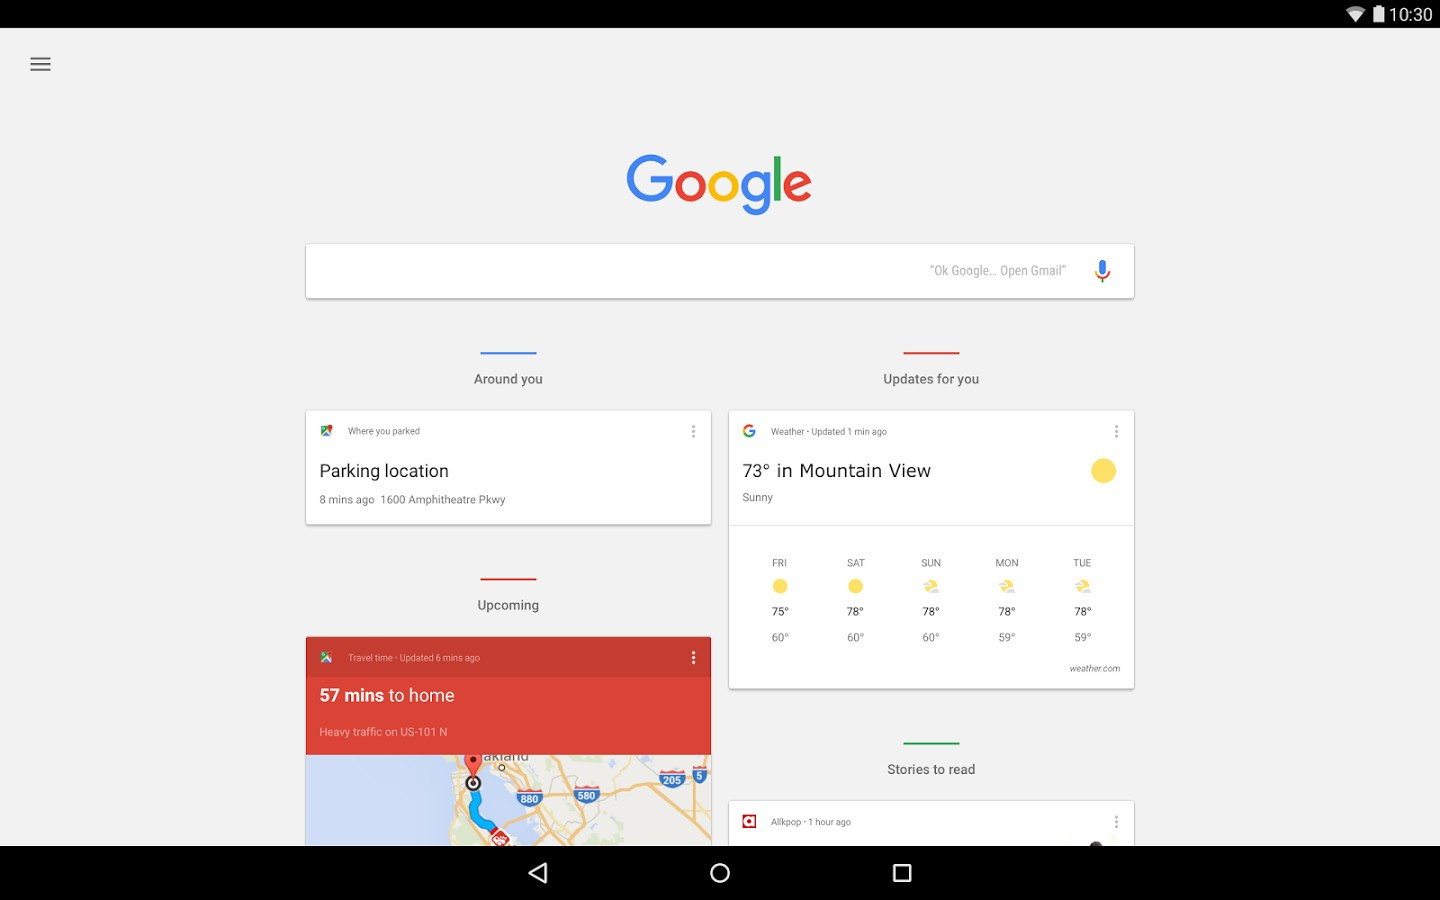 Google Redesigns the Way Its Android App Works, iOS Version